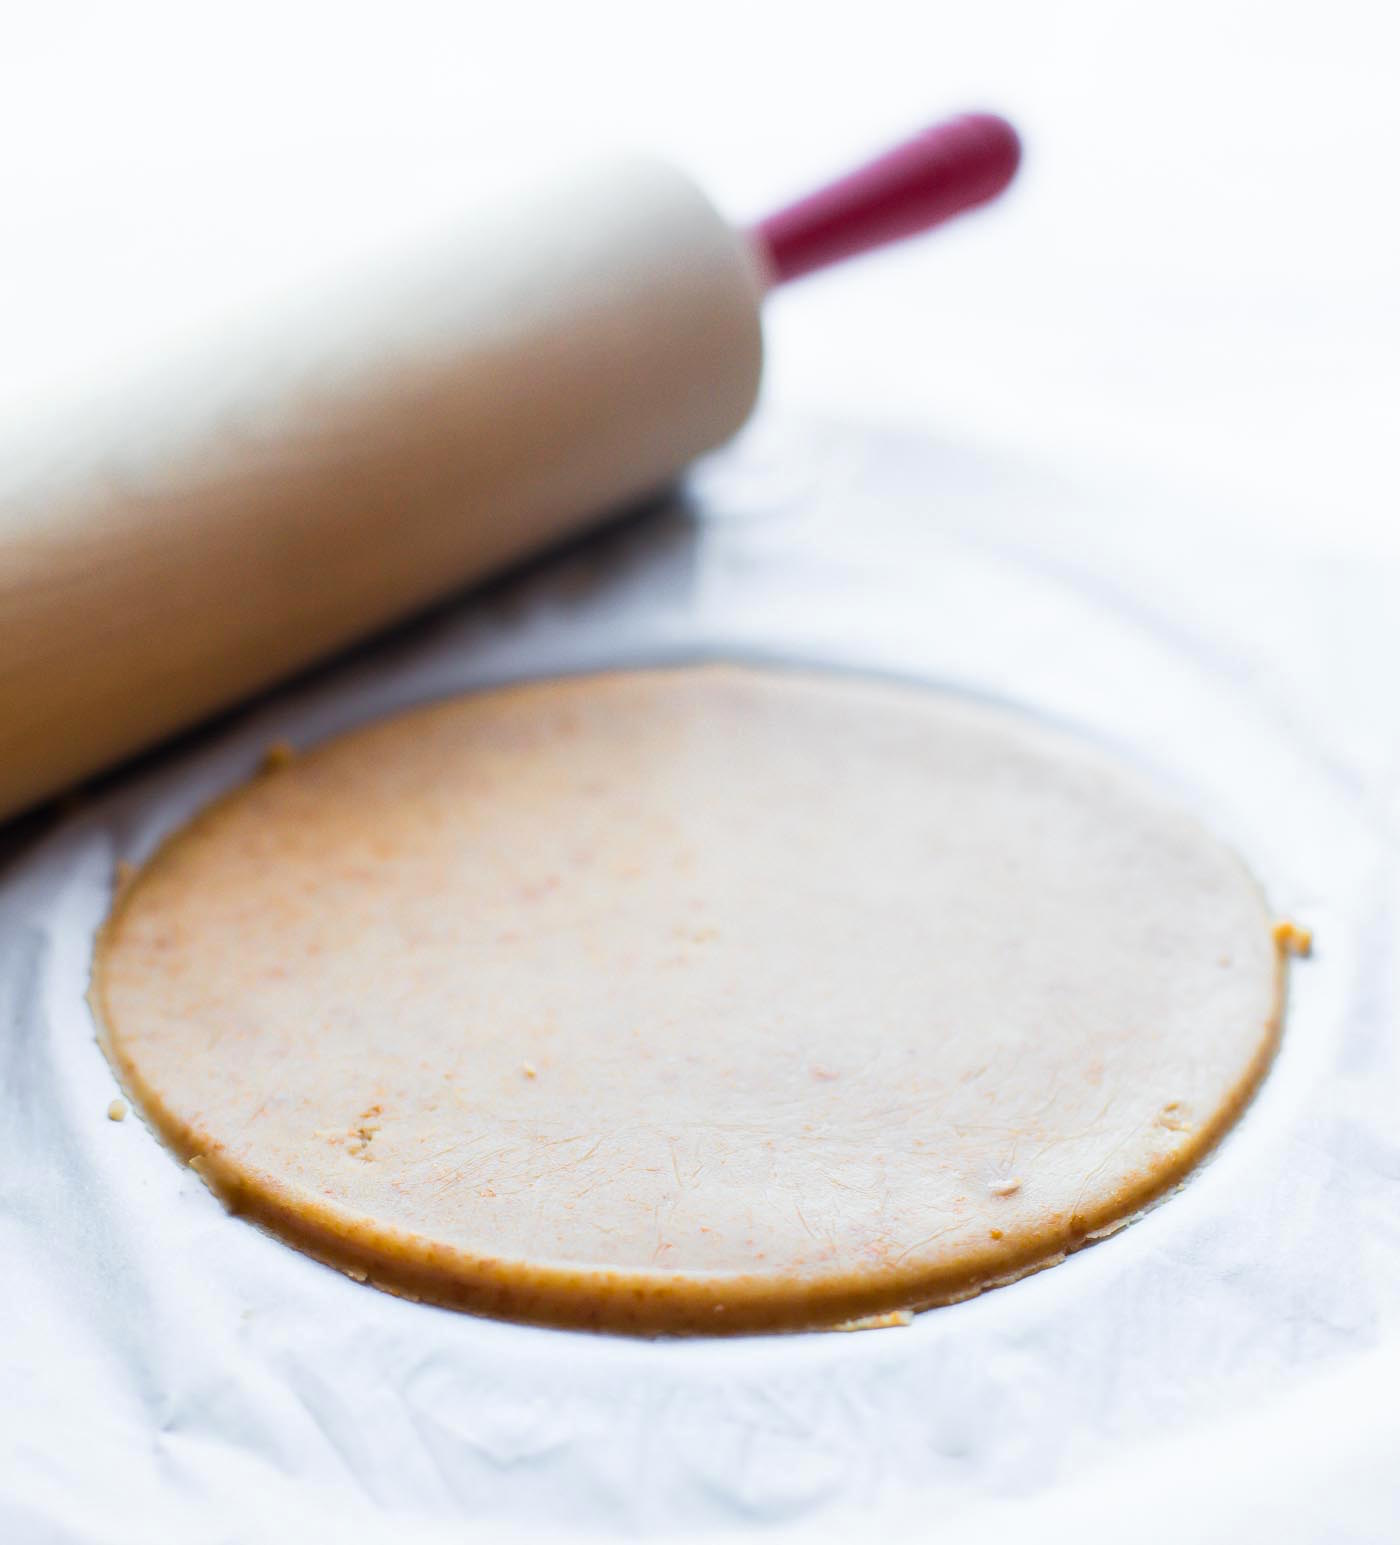 A 3ingredient gluten free pie crust recipe that's easy to make and a dairy free. All you need are 3 healthy ingredients to mix the dough. A multipurpose gluten free pie crust that's great for a quick meal, dessert, or baking dish. This recipe has become a staple in our house for easy gluten free baking!